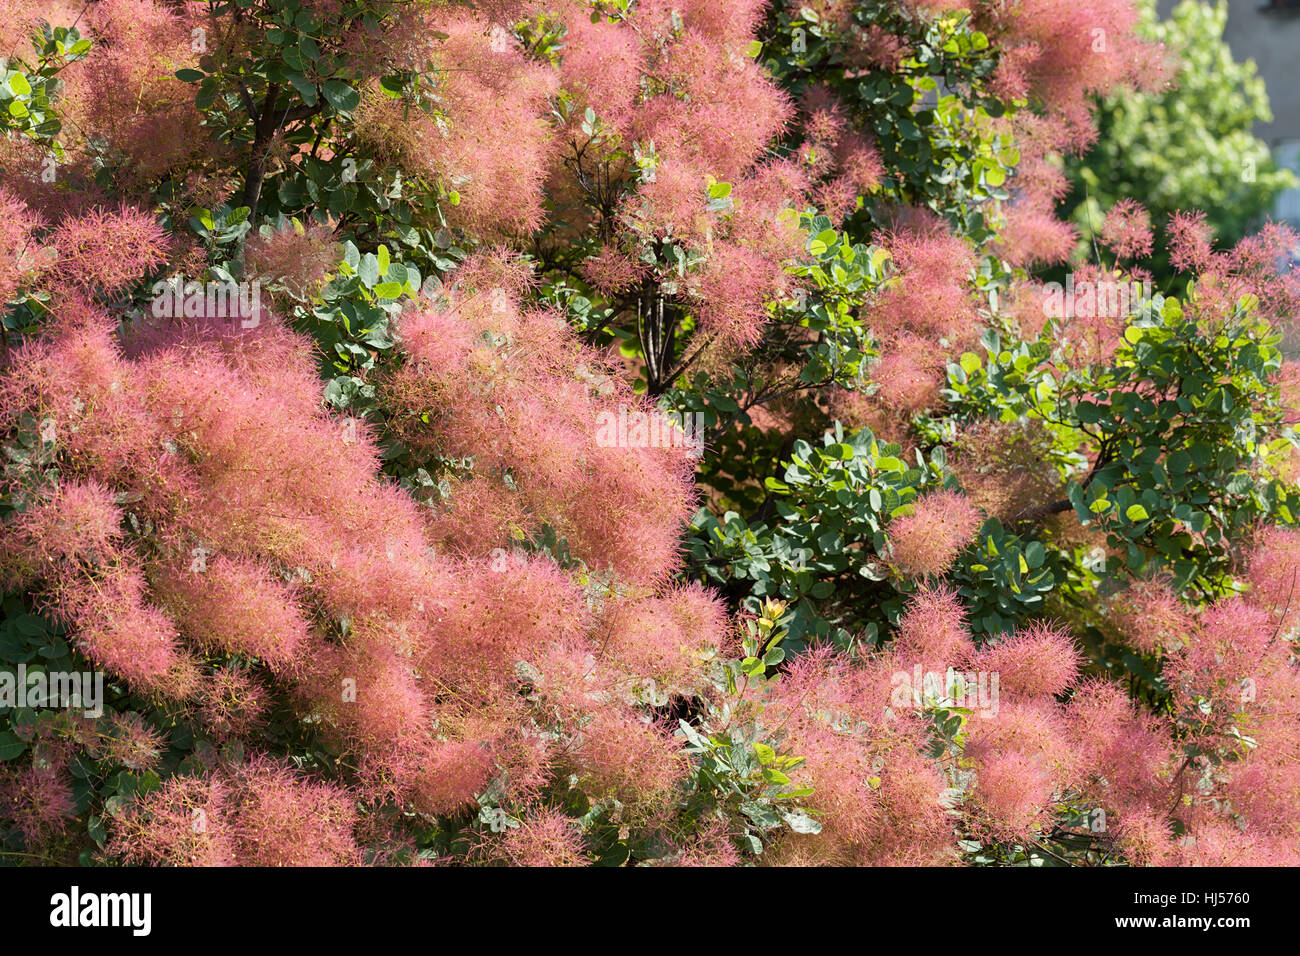 Fluffy Tree Pink Flowers Note Stock Photos Fluffy Tree Pink